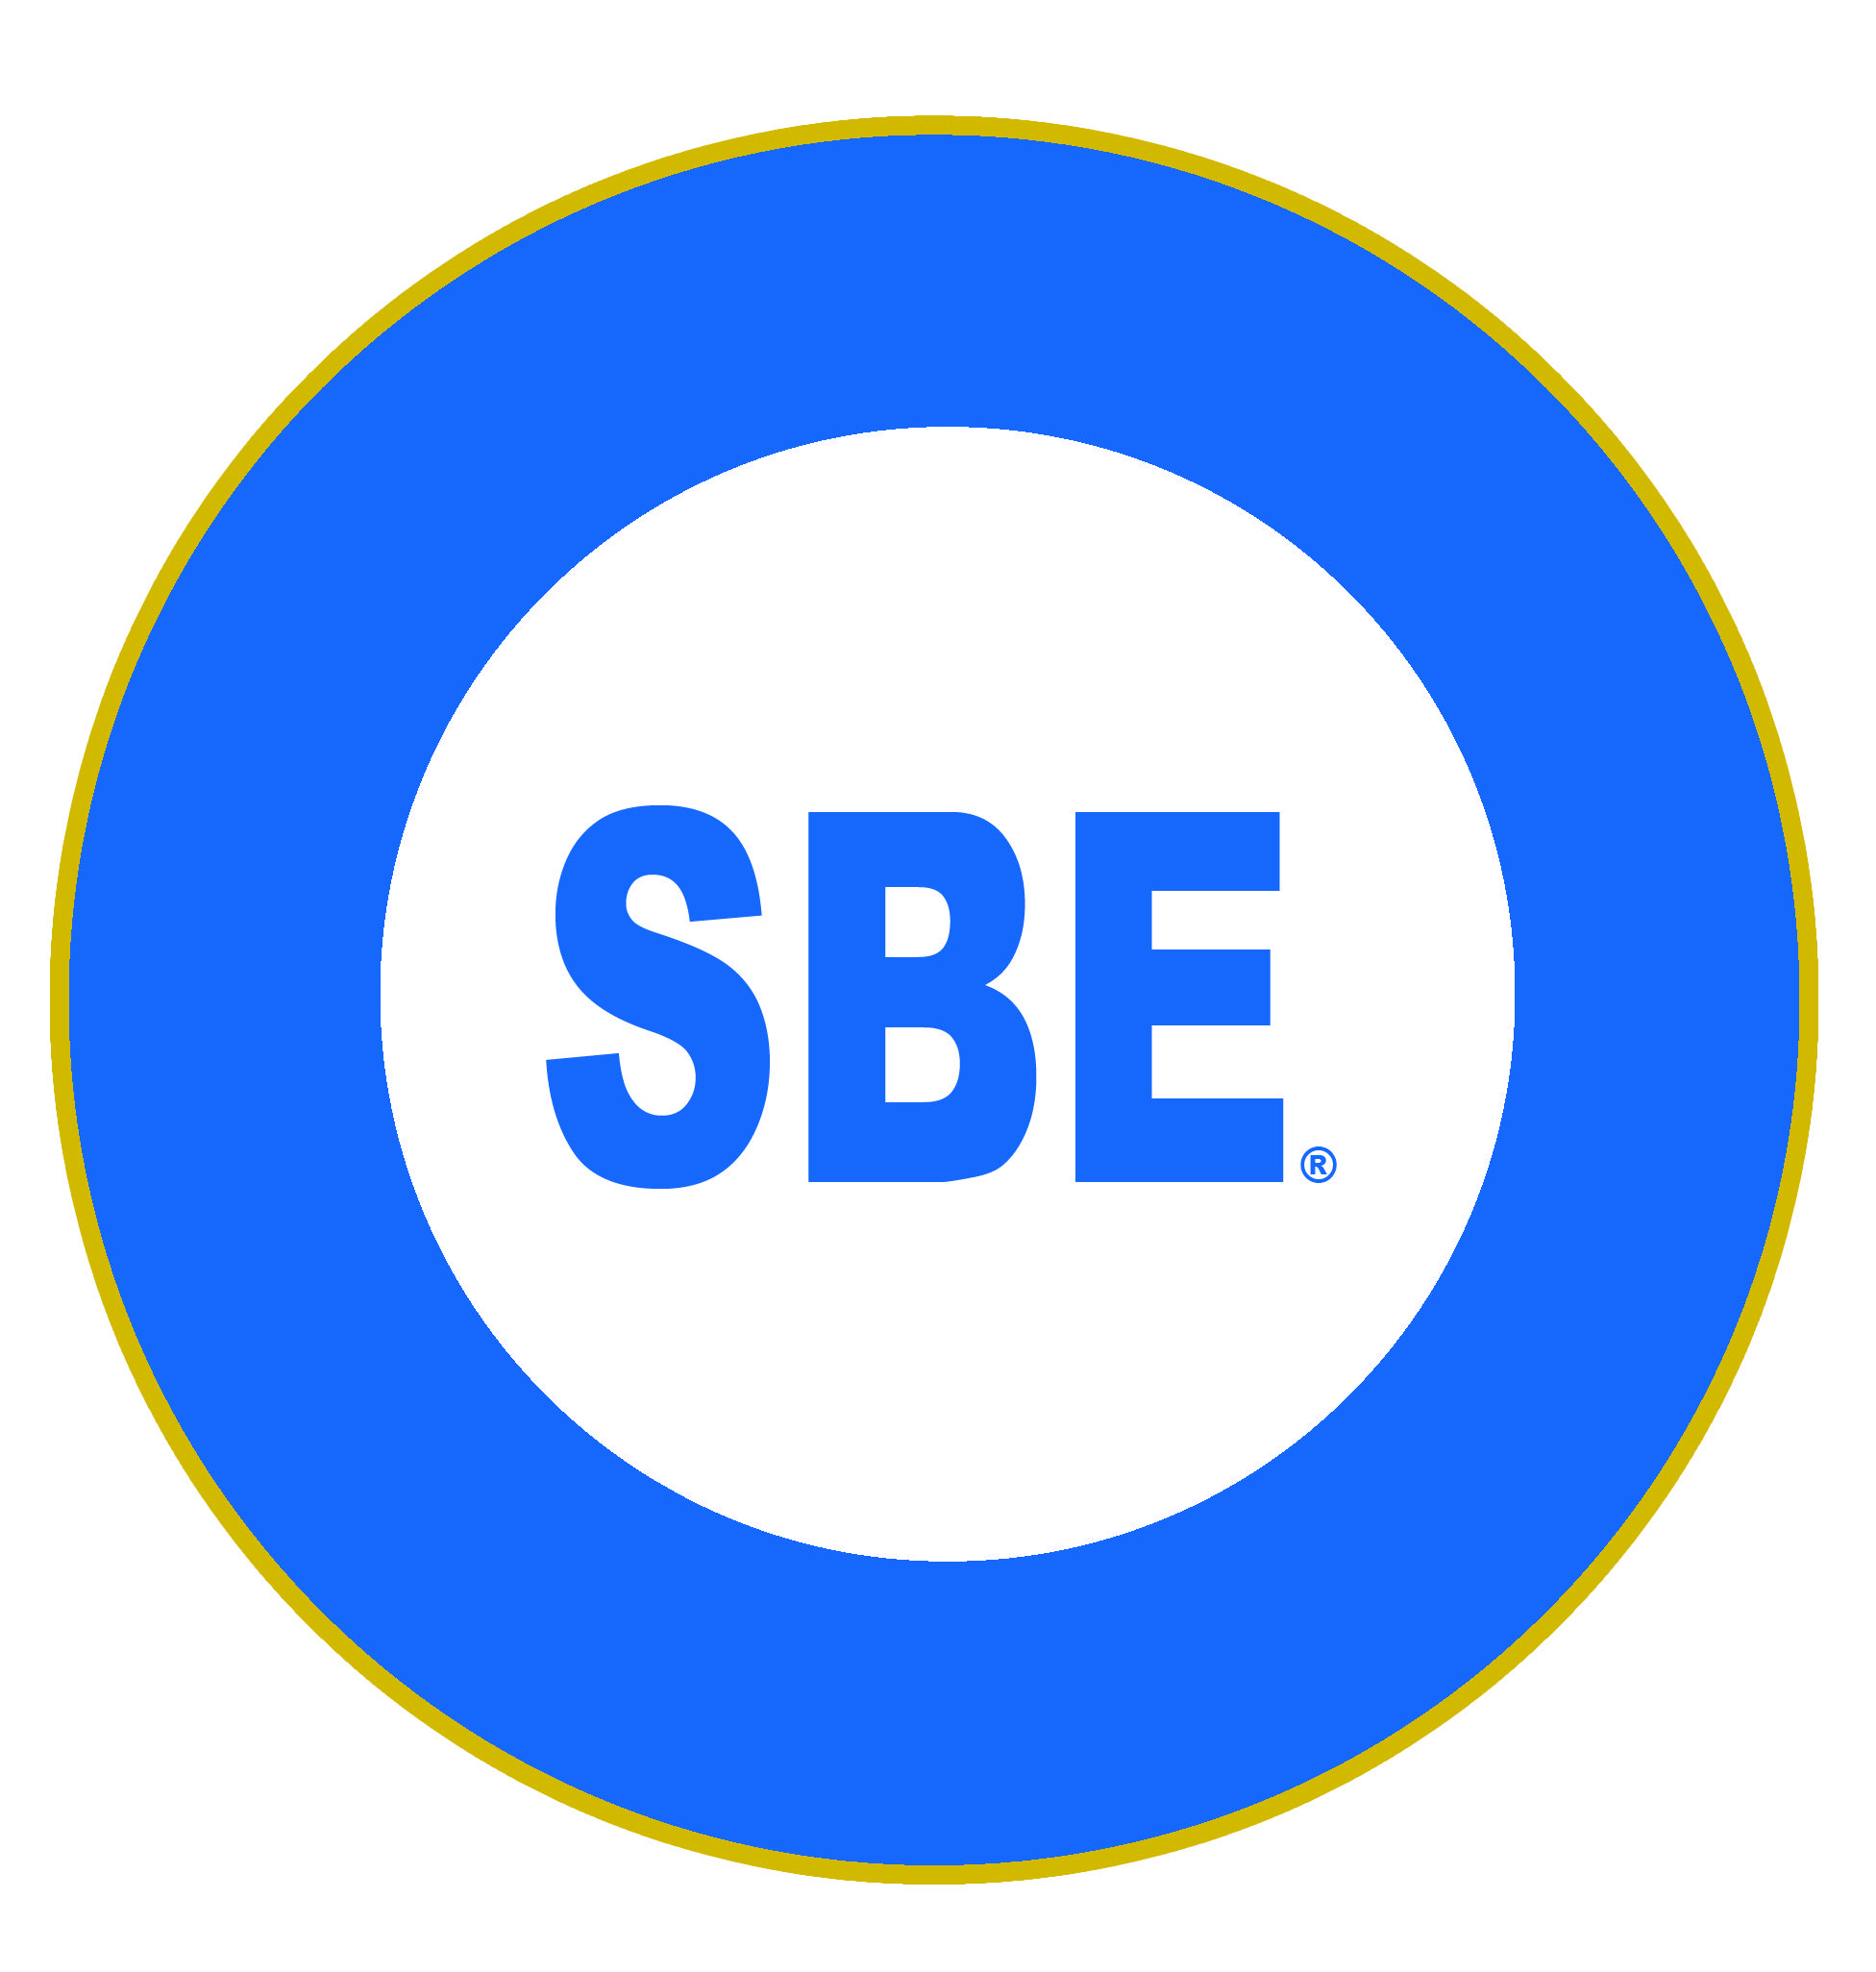 Black and White with Blue Circle Logo - Society of Broadcast Engineers